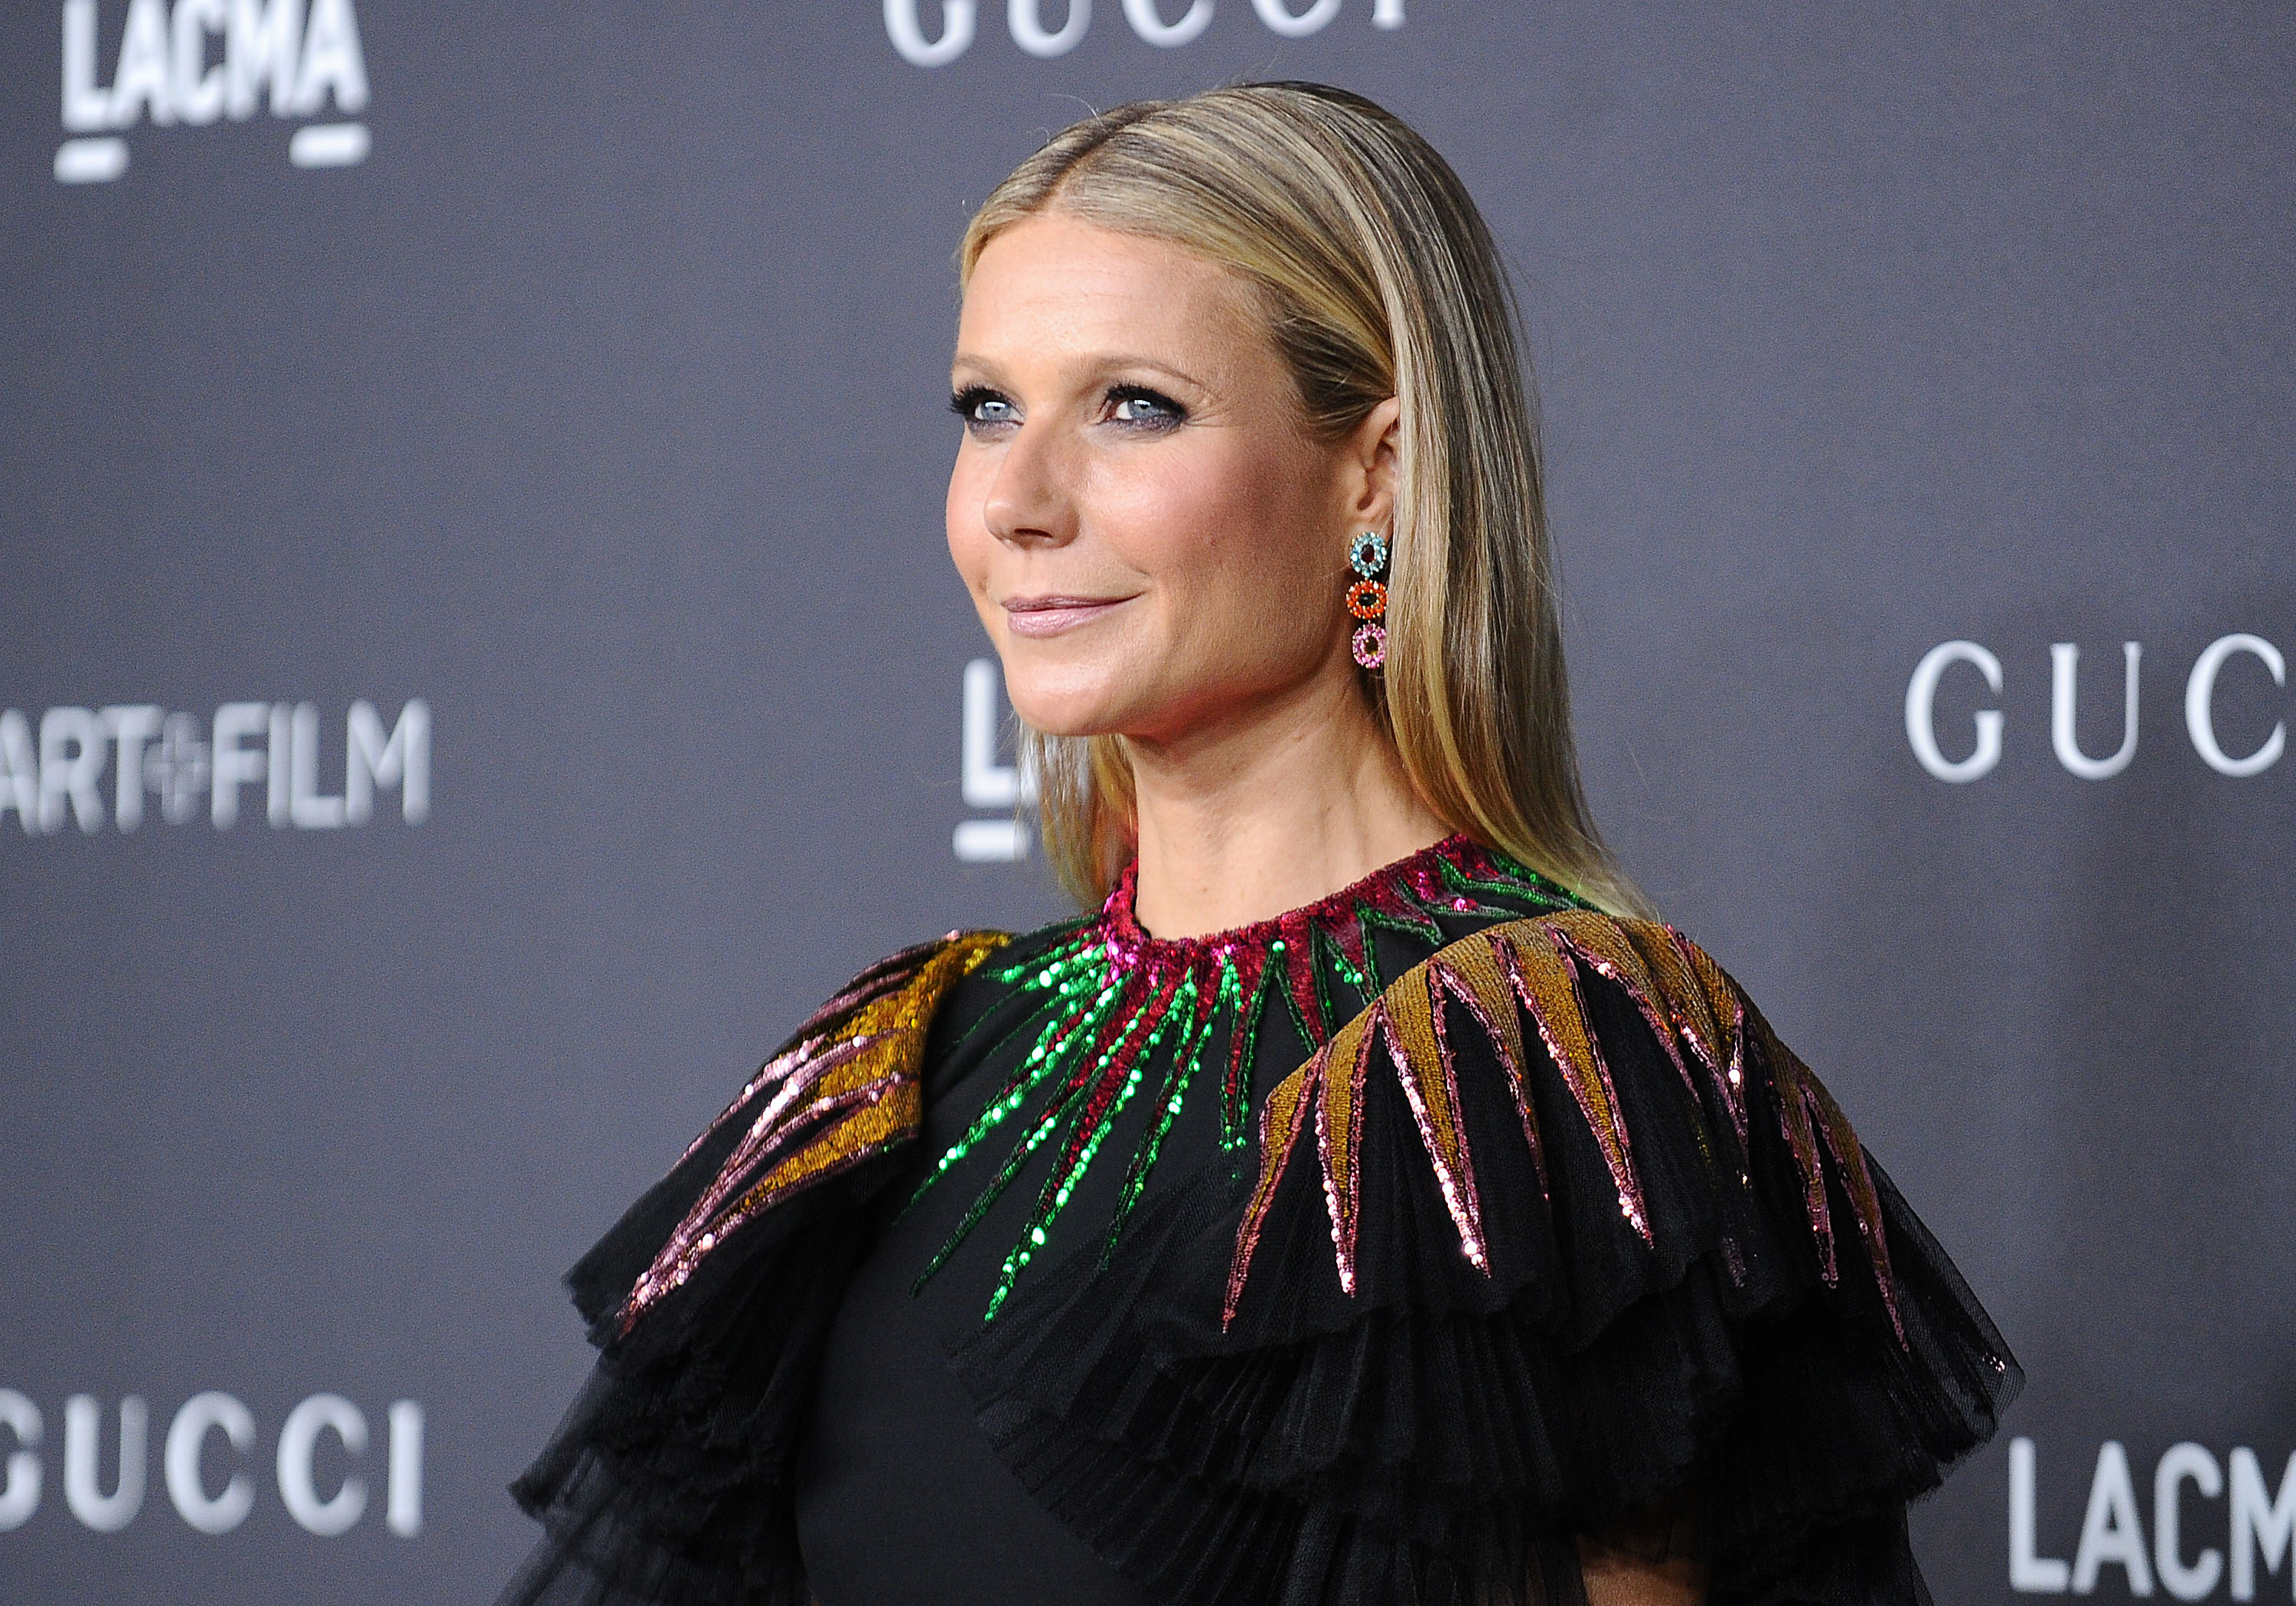 Gwyneth Paltrow wore a stunning dress that's an exciting twist on the LBD